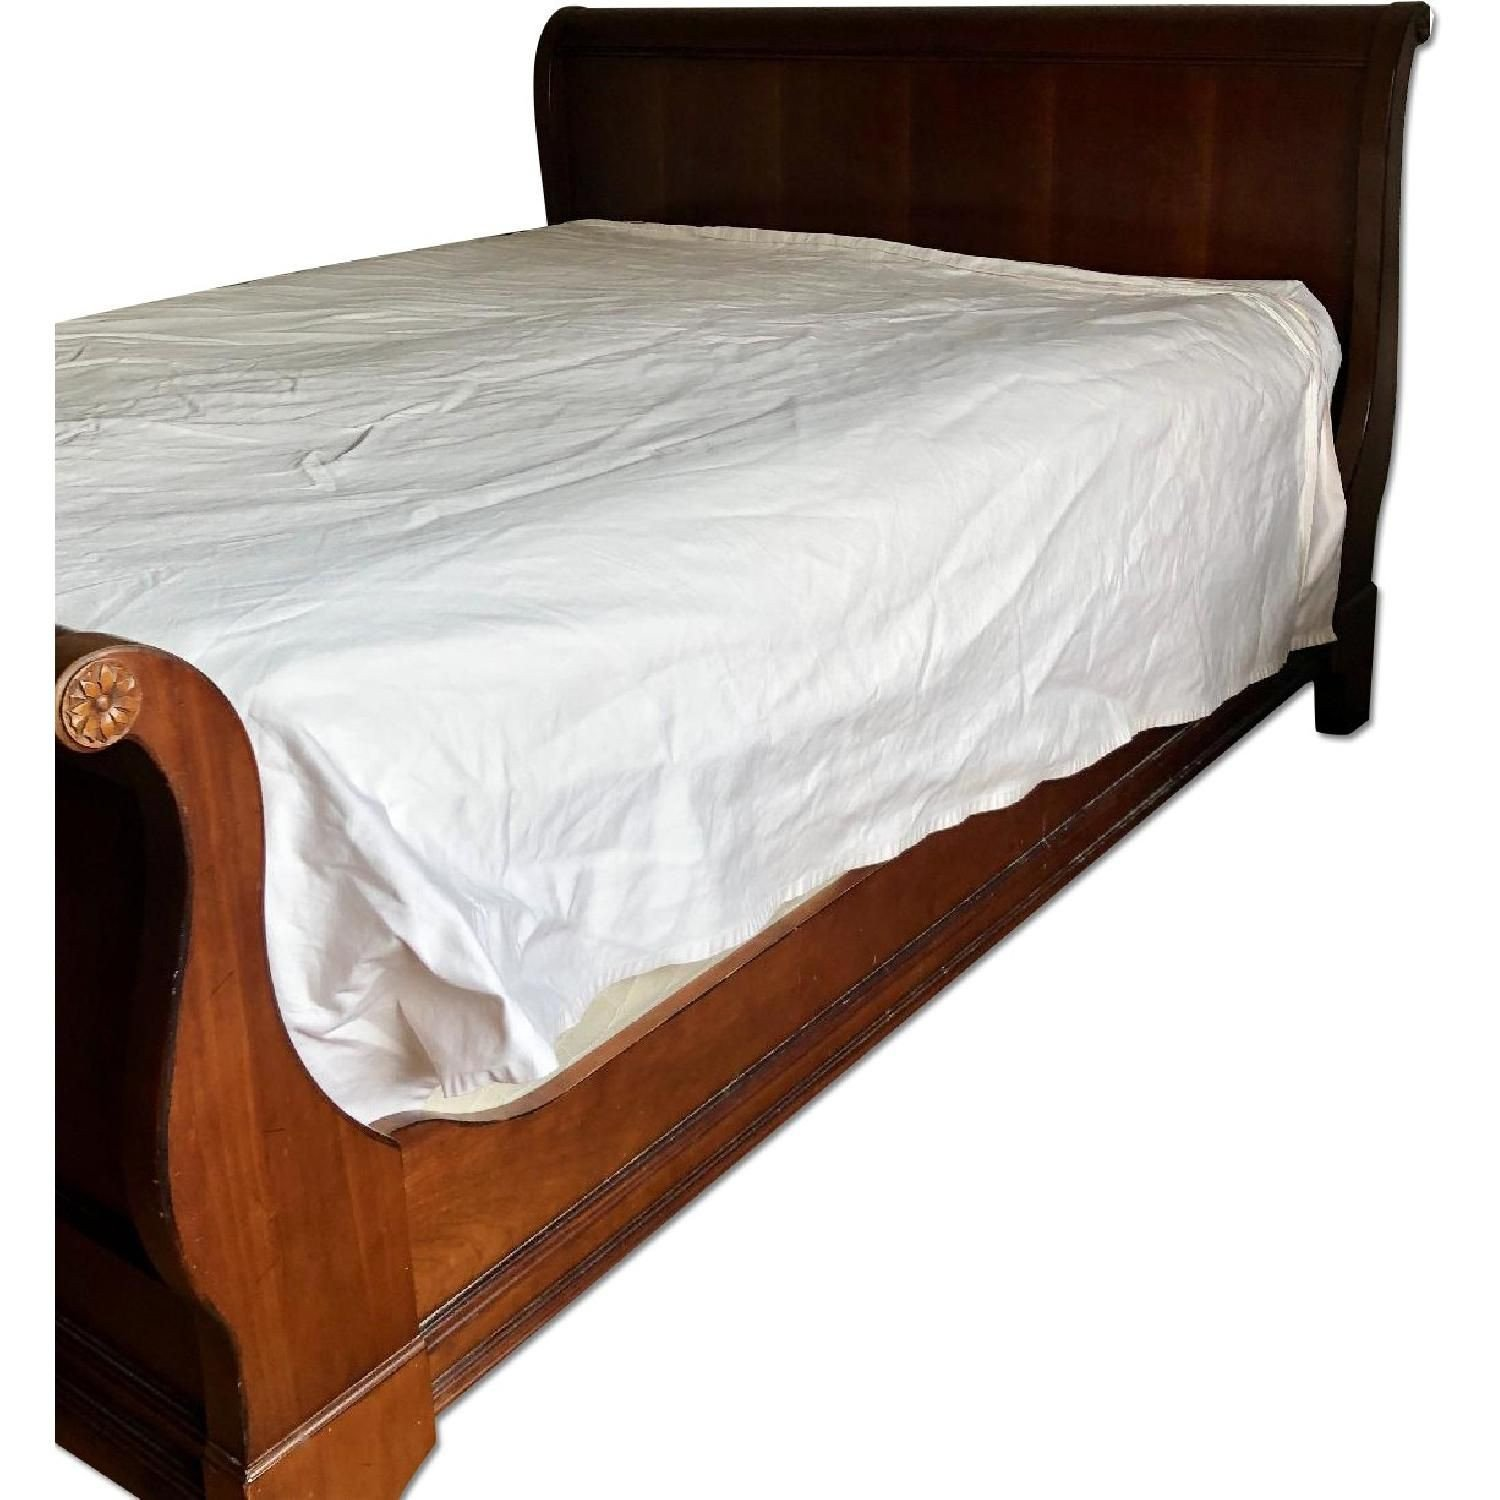 Drexel Heritage Bedroom Furniture Best Of Drexel Queen Size Sleigh Bed Frame